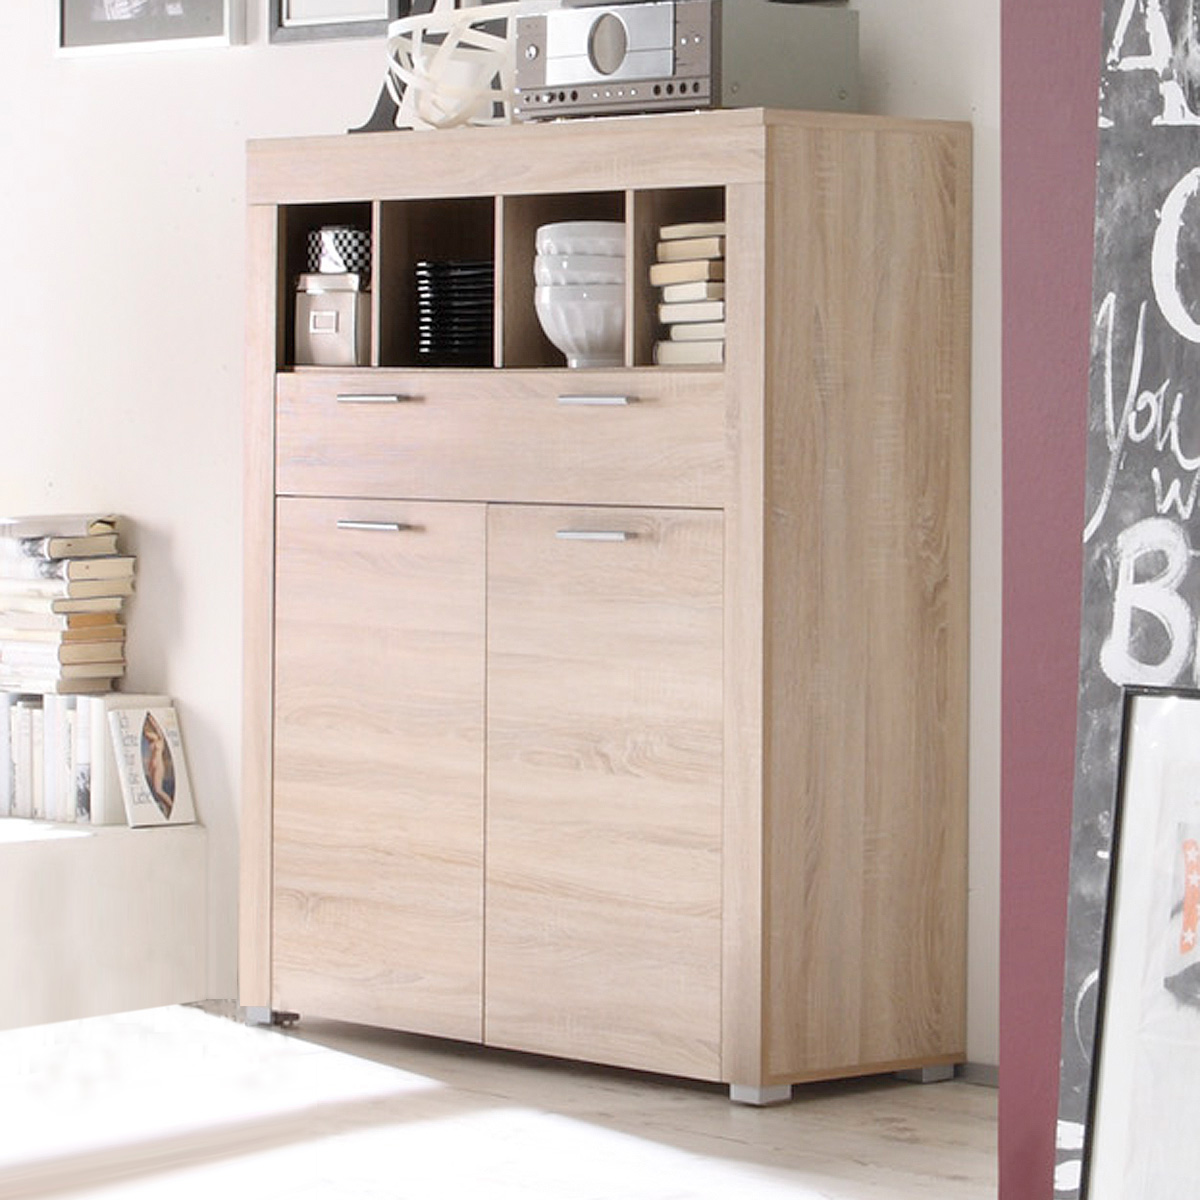 kommode boom schrank sideboard sonoma eiche s gerau hell. Black Bedroom Furniture Sets. Home Design Ideas